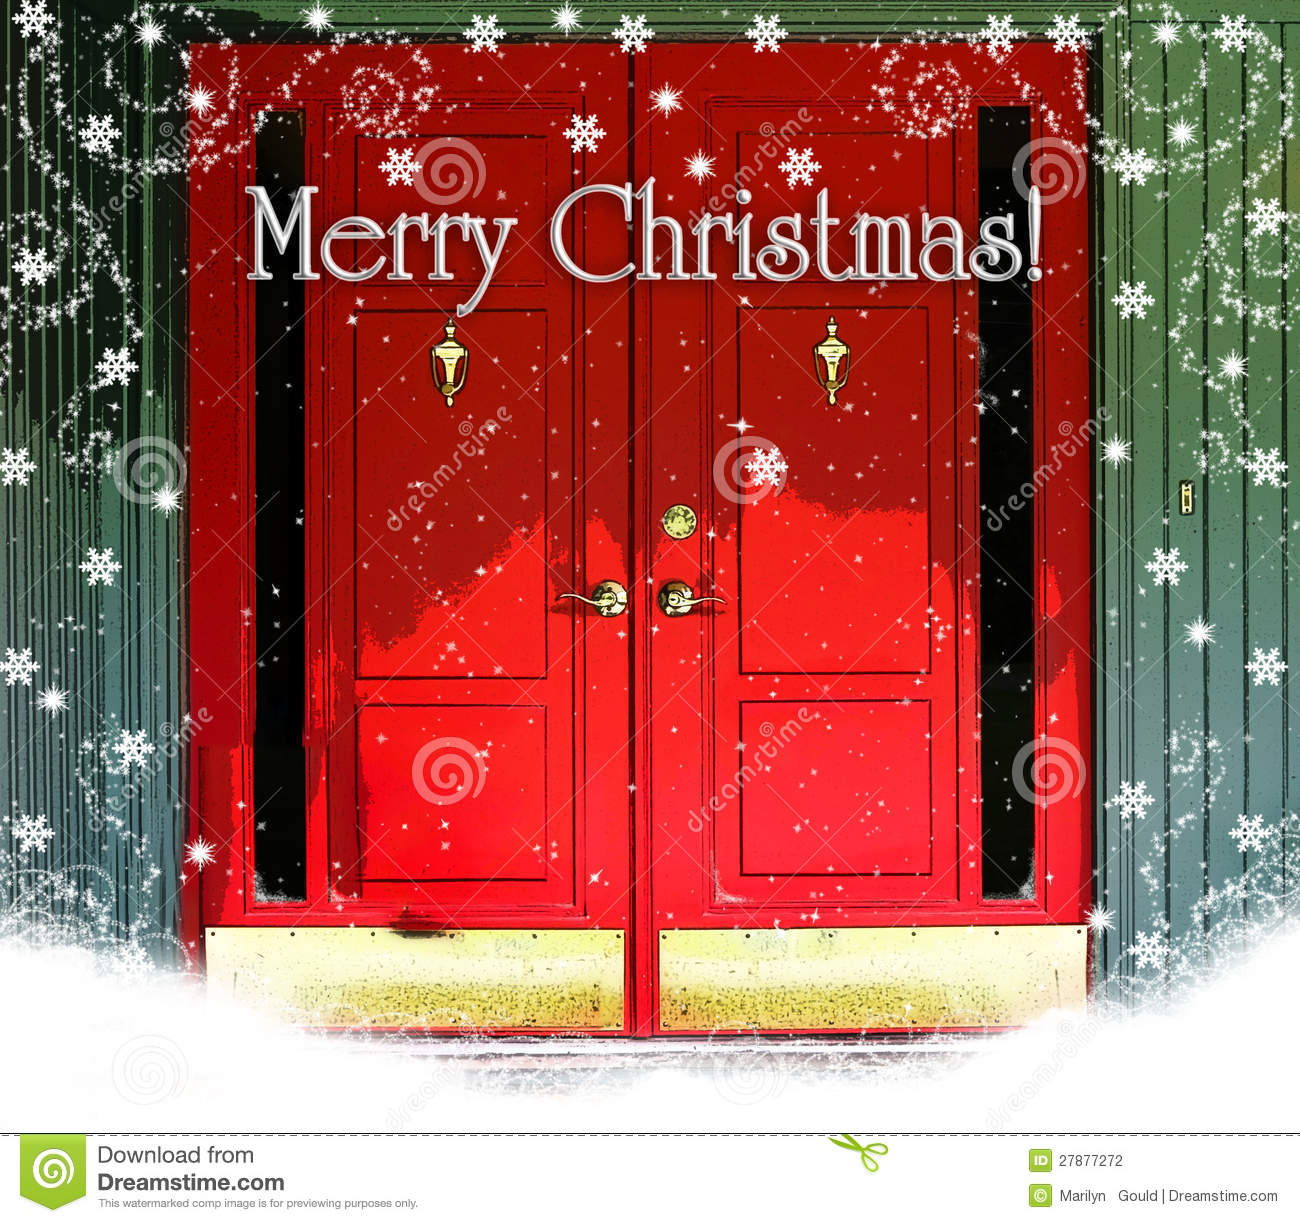 Red Doors Merry Christmas Stock Photo Image Of Snow 27877272